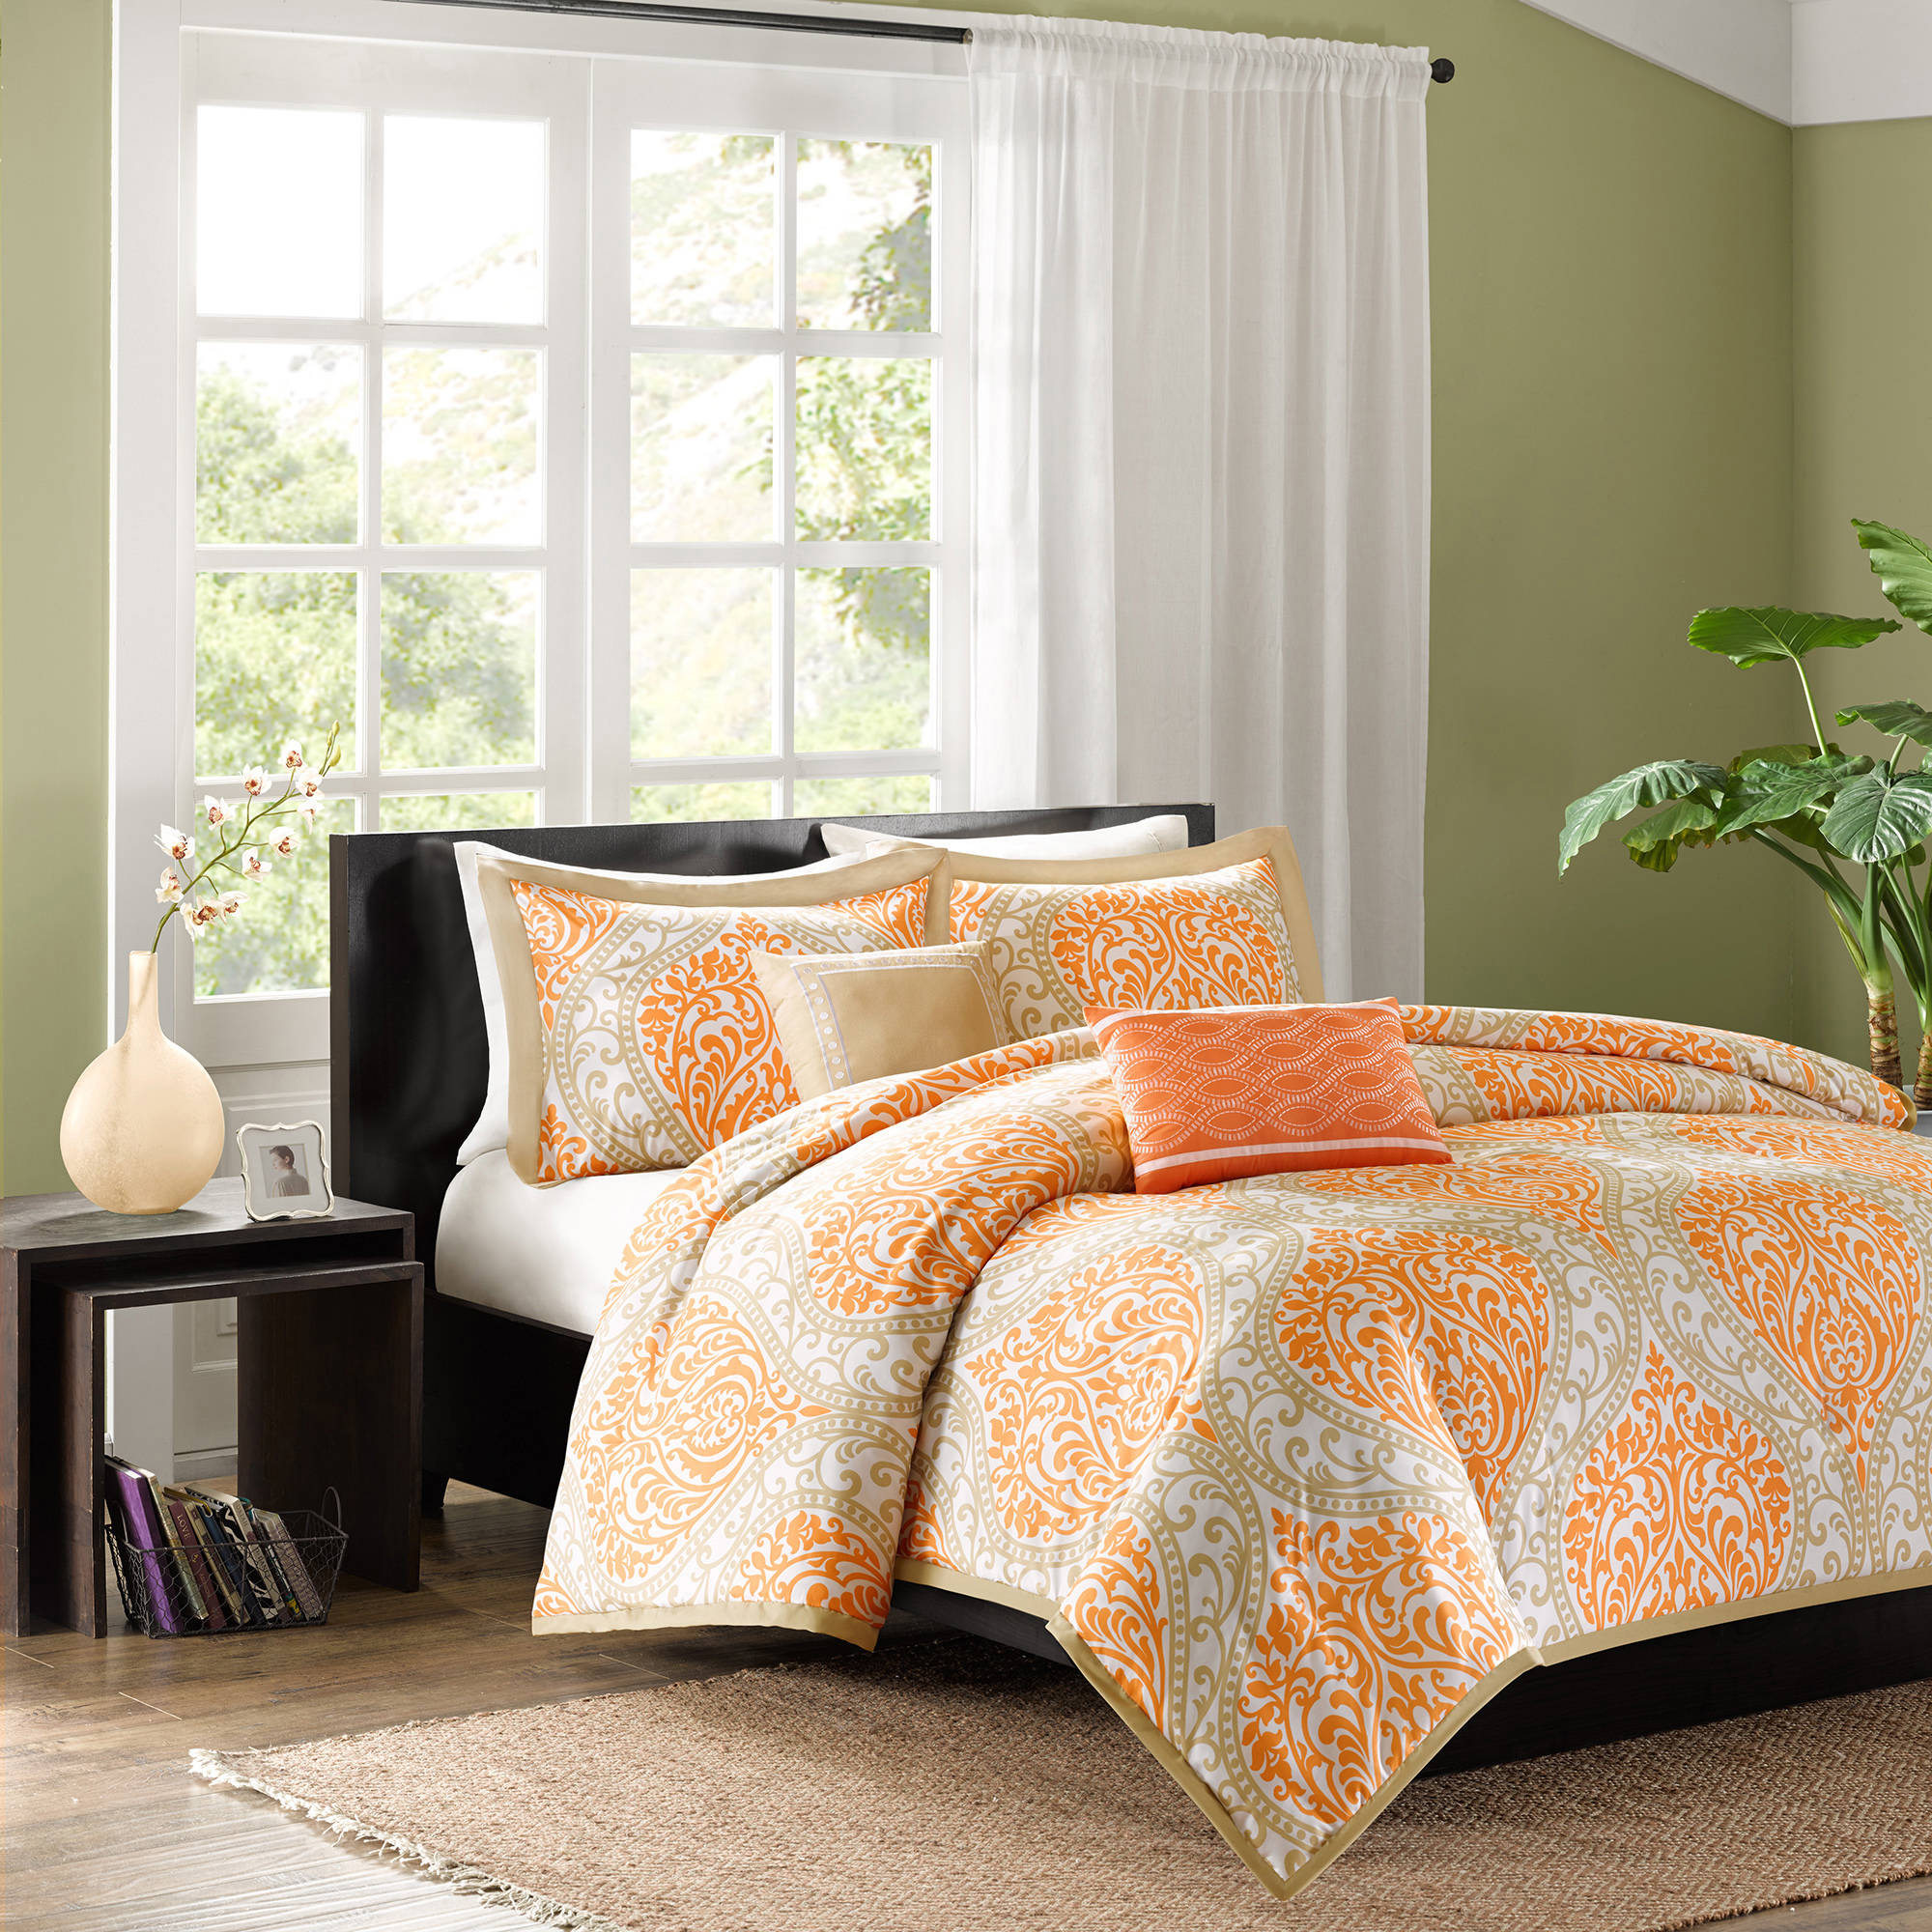 Home Essence Apartment Chelsea Bedding Comforter/Duvet Set